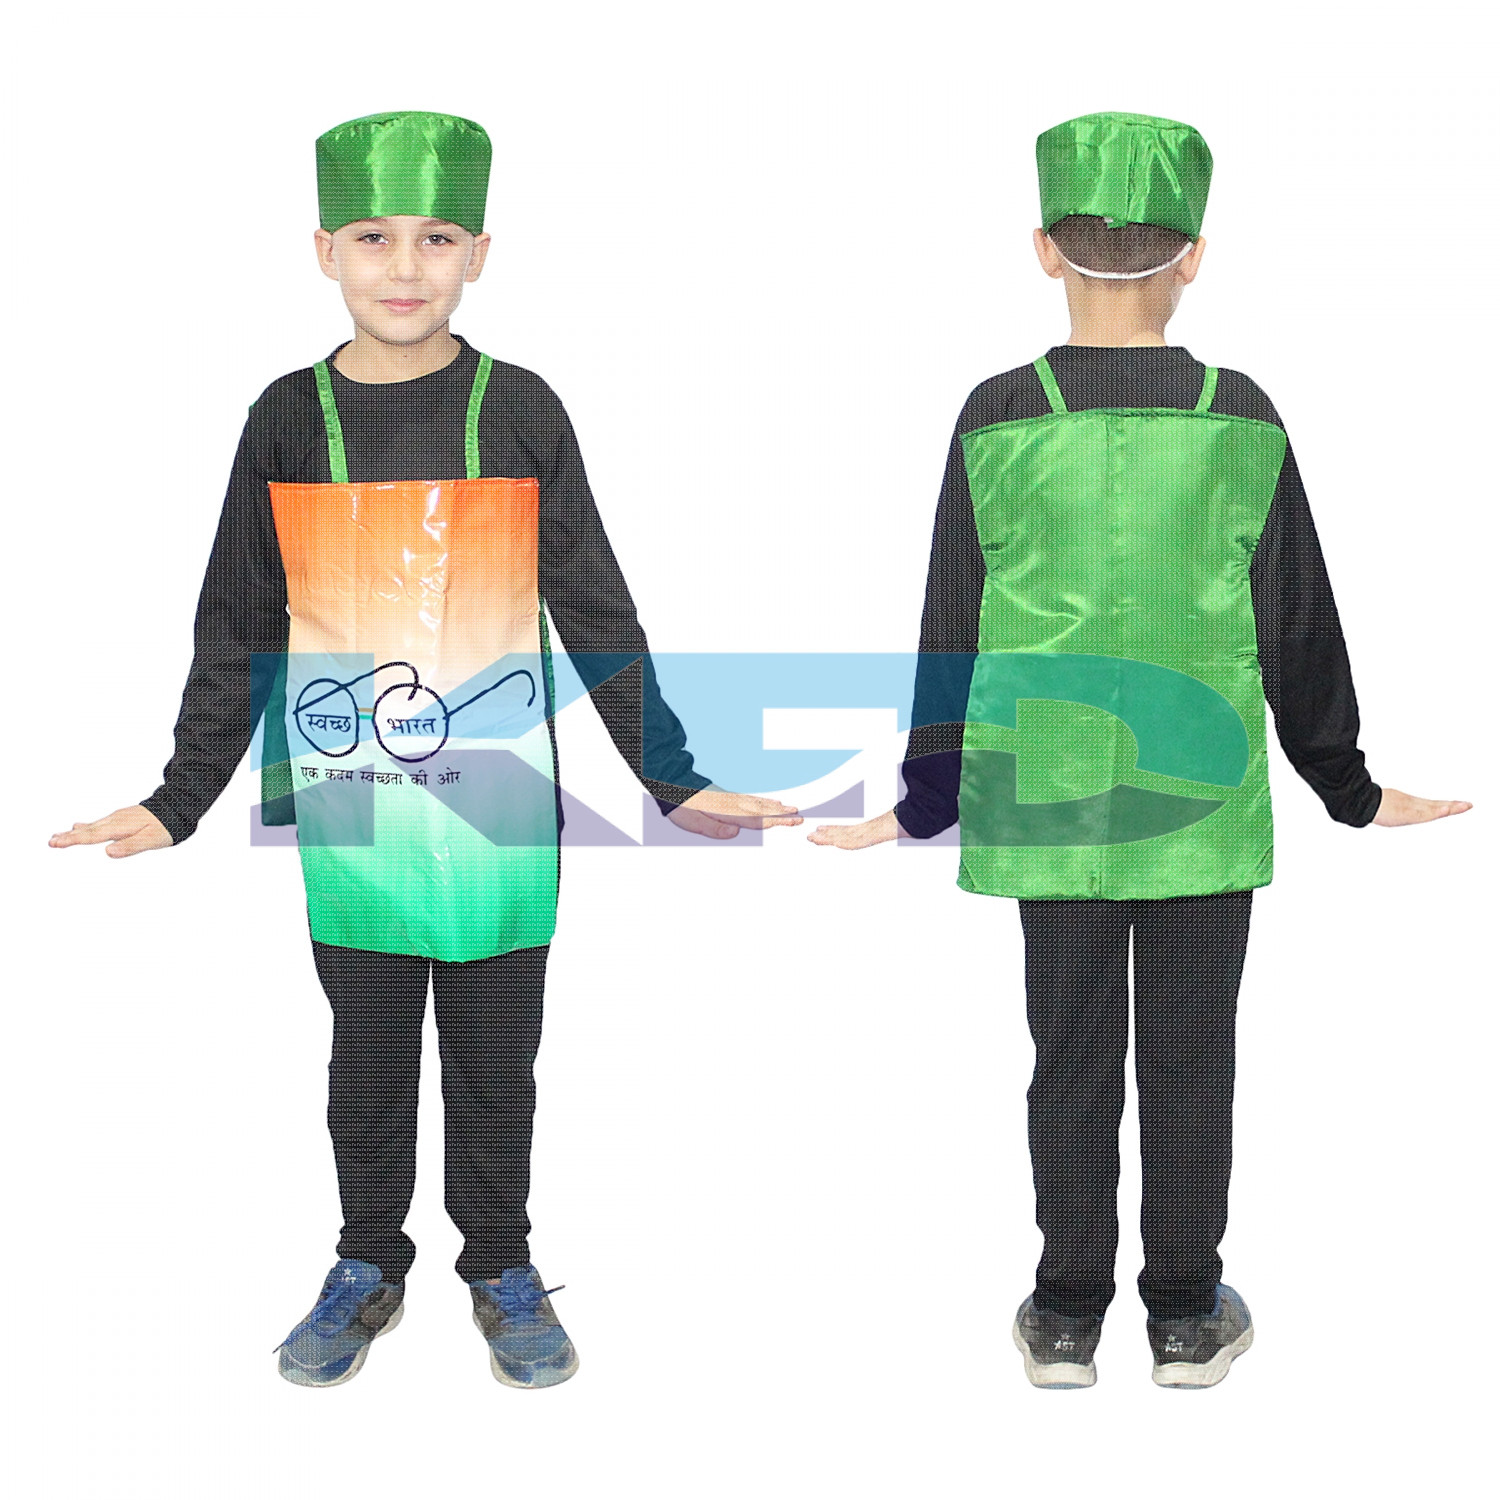 Clean India Fancy Dress/Swach Bharat Abhiyan Fancy Dress For Kids/Social Massage Costume For Annual function/Theme Party/Competition/Stage Shows/Birthday Party Dress